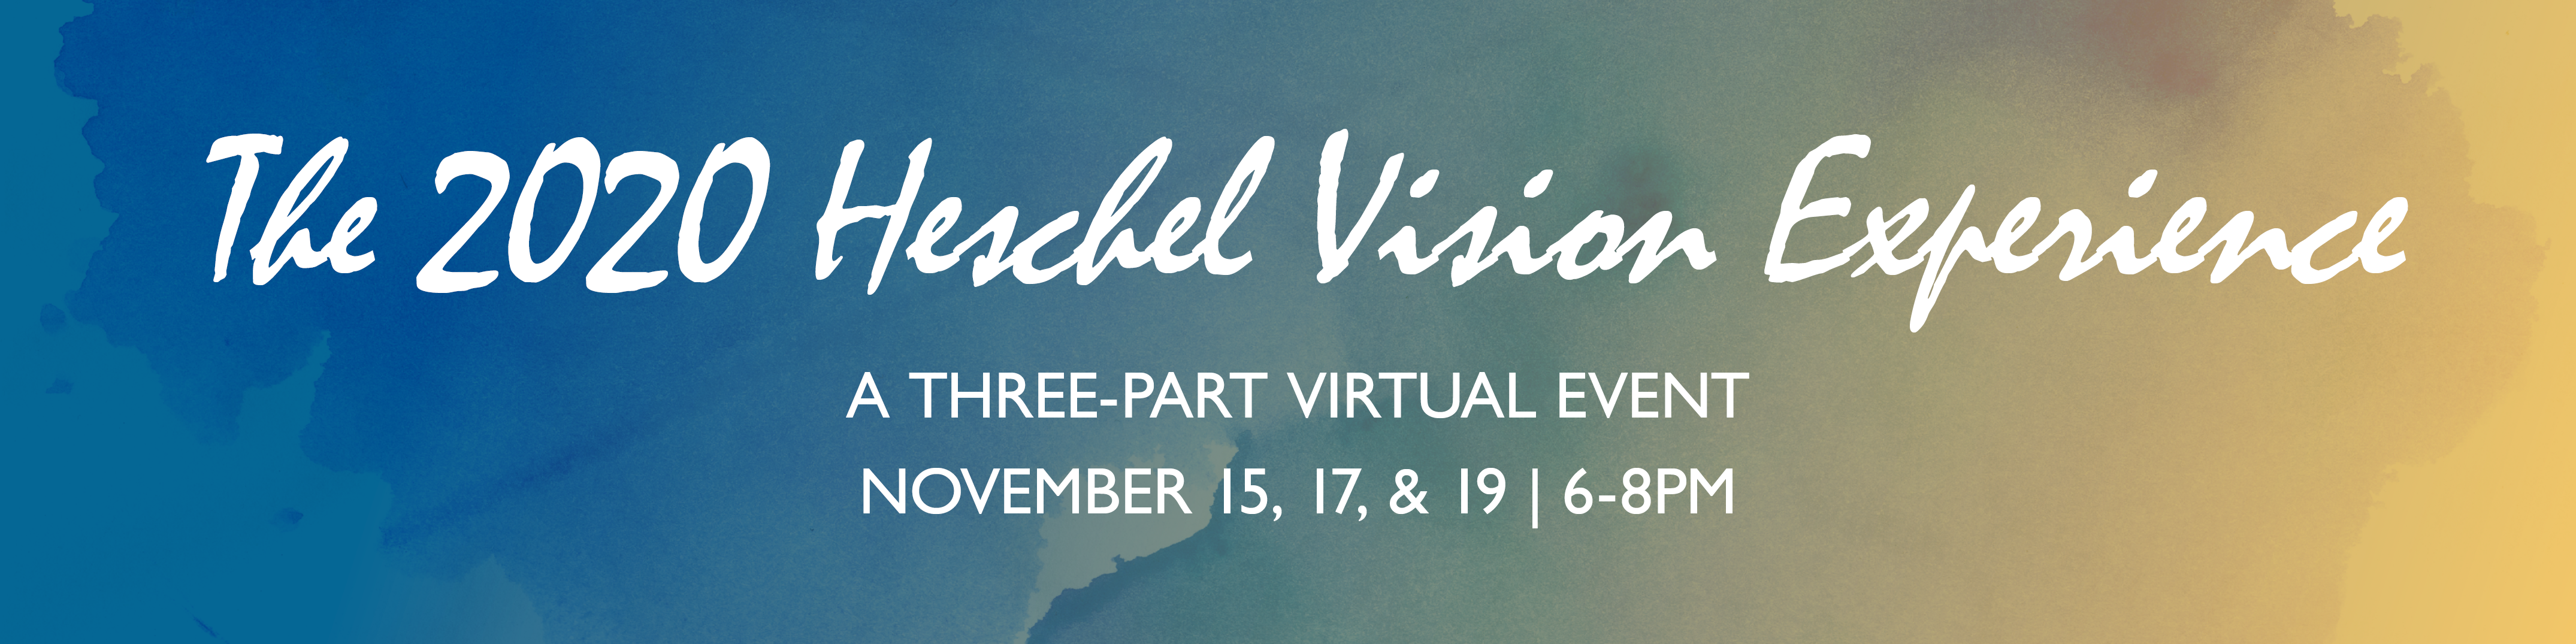 """Gradient background with words that read """"2020 Heschel Vision Experience: A Three-Part Virtual Event"""""""